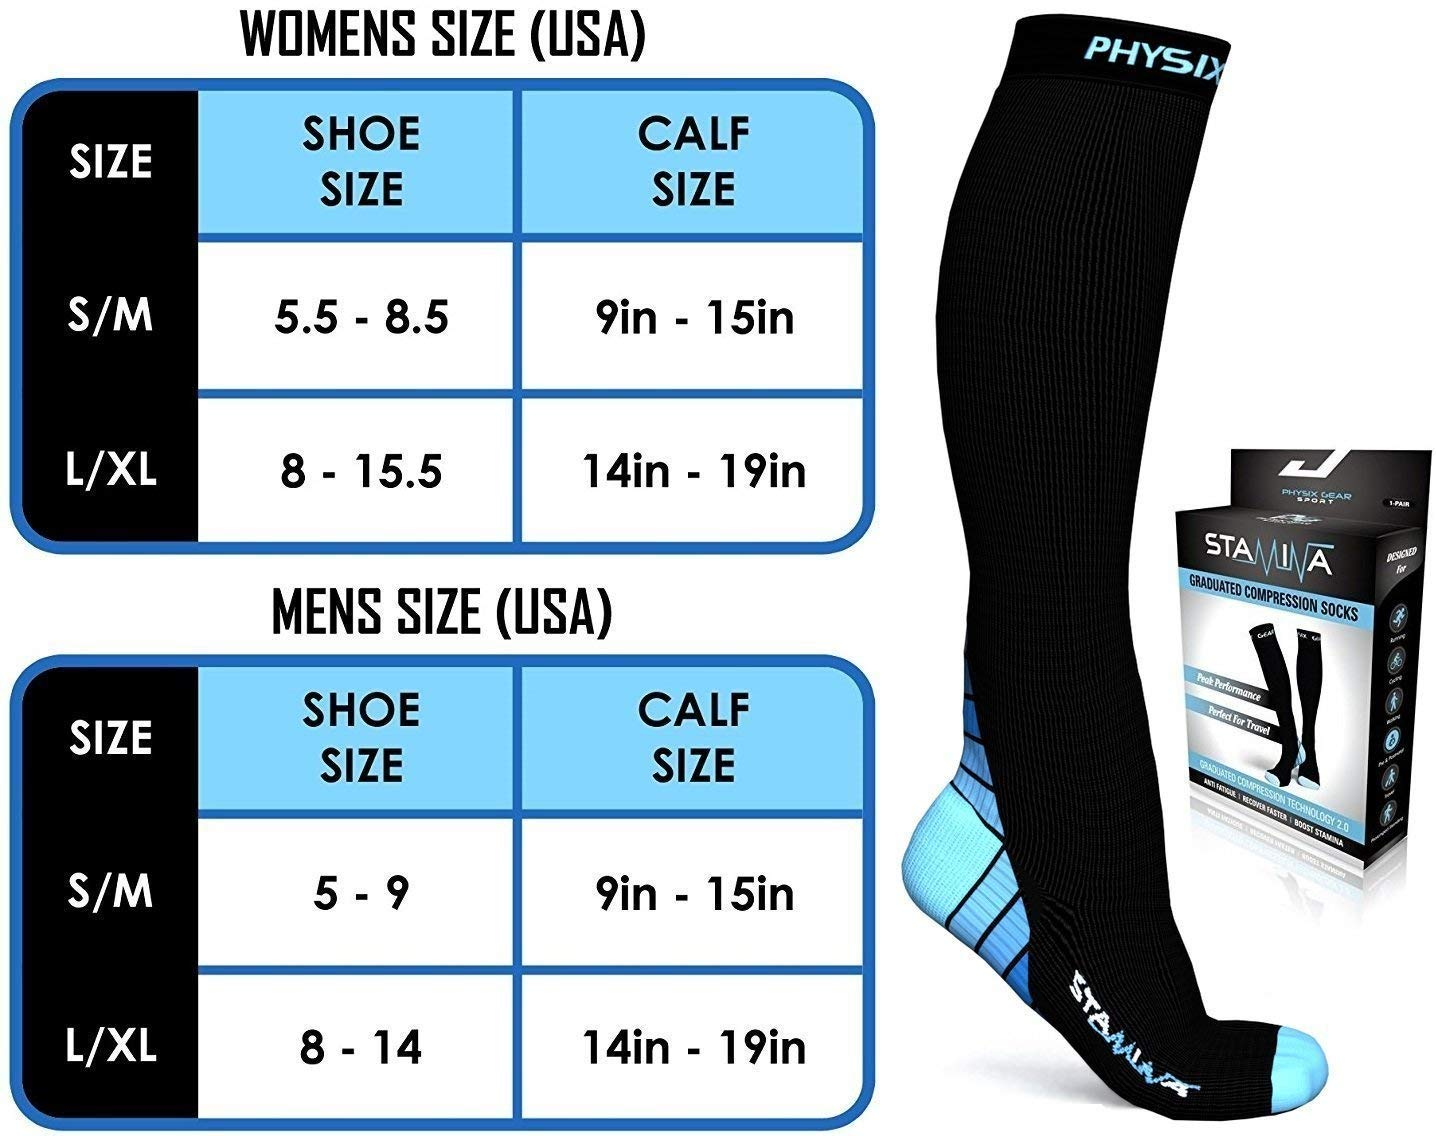 3 Pack Compression Socks for Men & Women 20-30 mmhg, Best Graduated Athletic Fit for Running Nurses Shin Splints Flight Travel & Maternity Pregnancy - Boost Stamina Circulation & Recovery BLU LXL by Physix Gear Sport (Image #6)